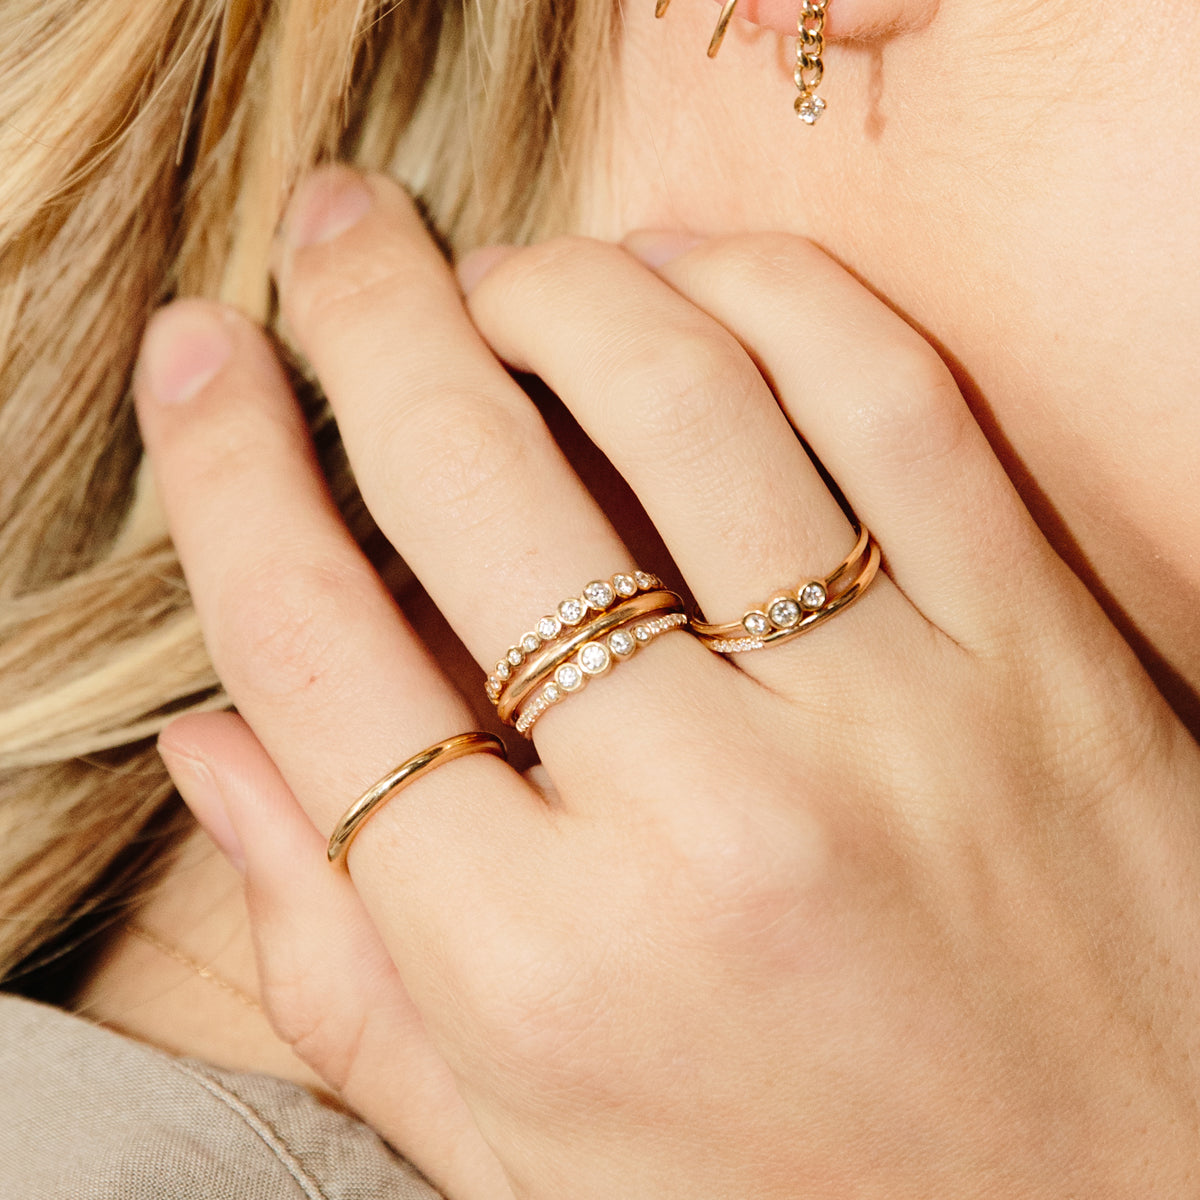 Zoe Chicco Creating Modern And Personalized Demi Fine And Fine Jewelry Since 2000